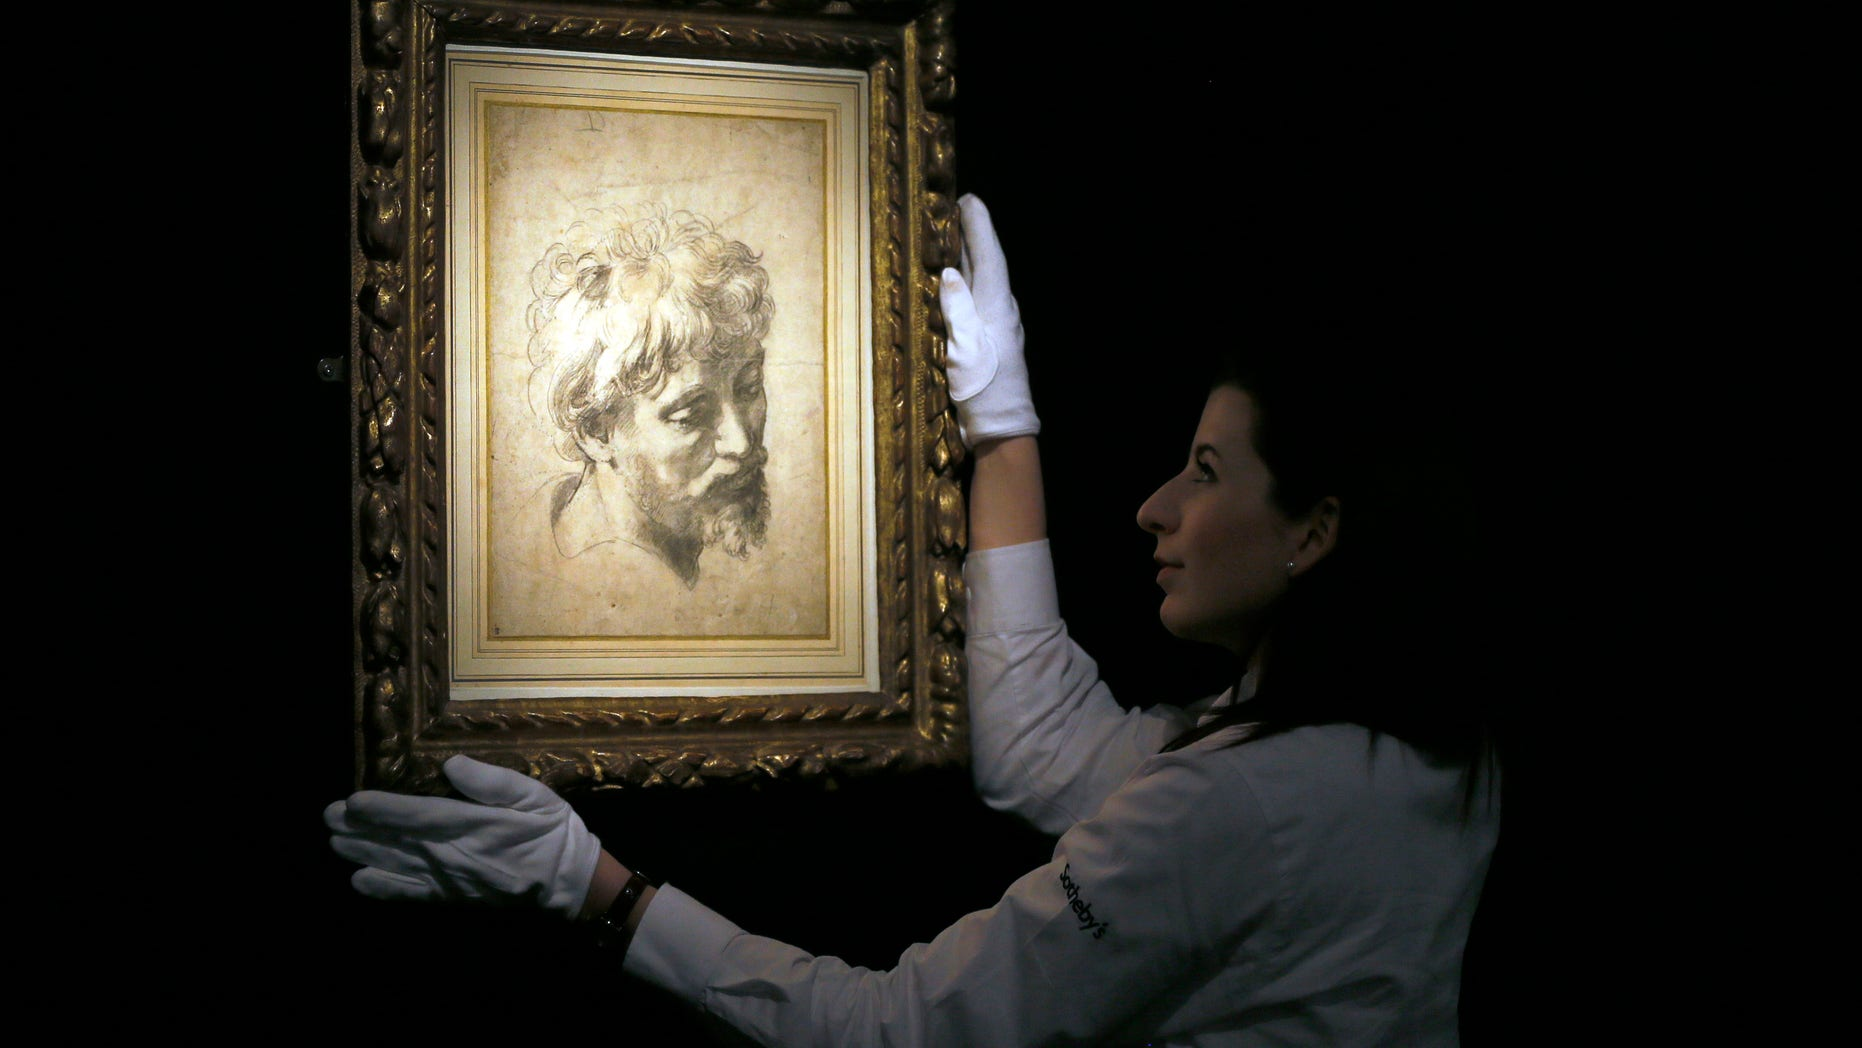 Nov. 30, 2012: A Sotheby's employee adjusts a drawing by Raffaello Sanzio, otherwise known as Raphael called 'Head of an Apostle', a Renaissance masterwork, during a press viewing in London.